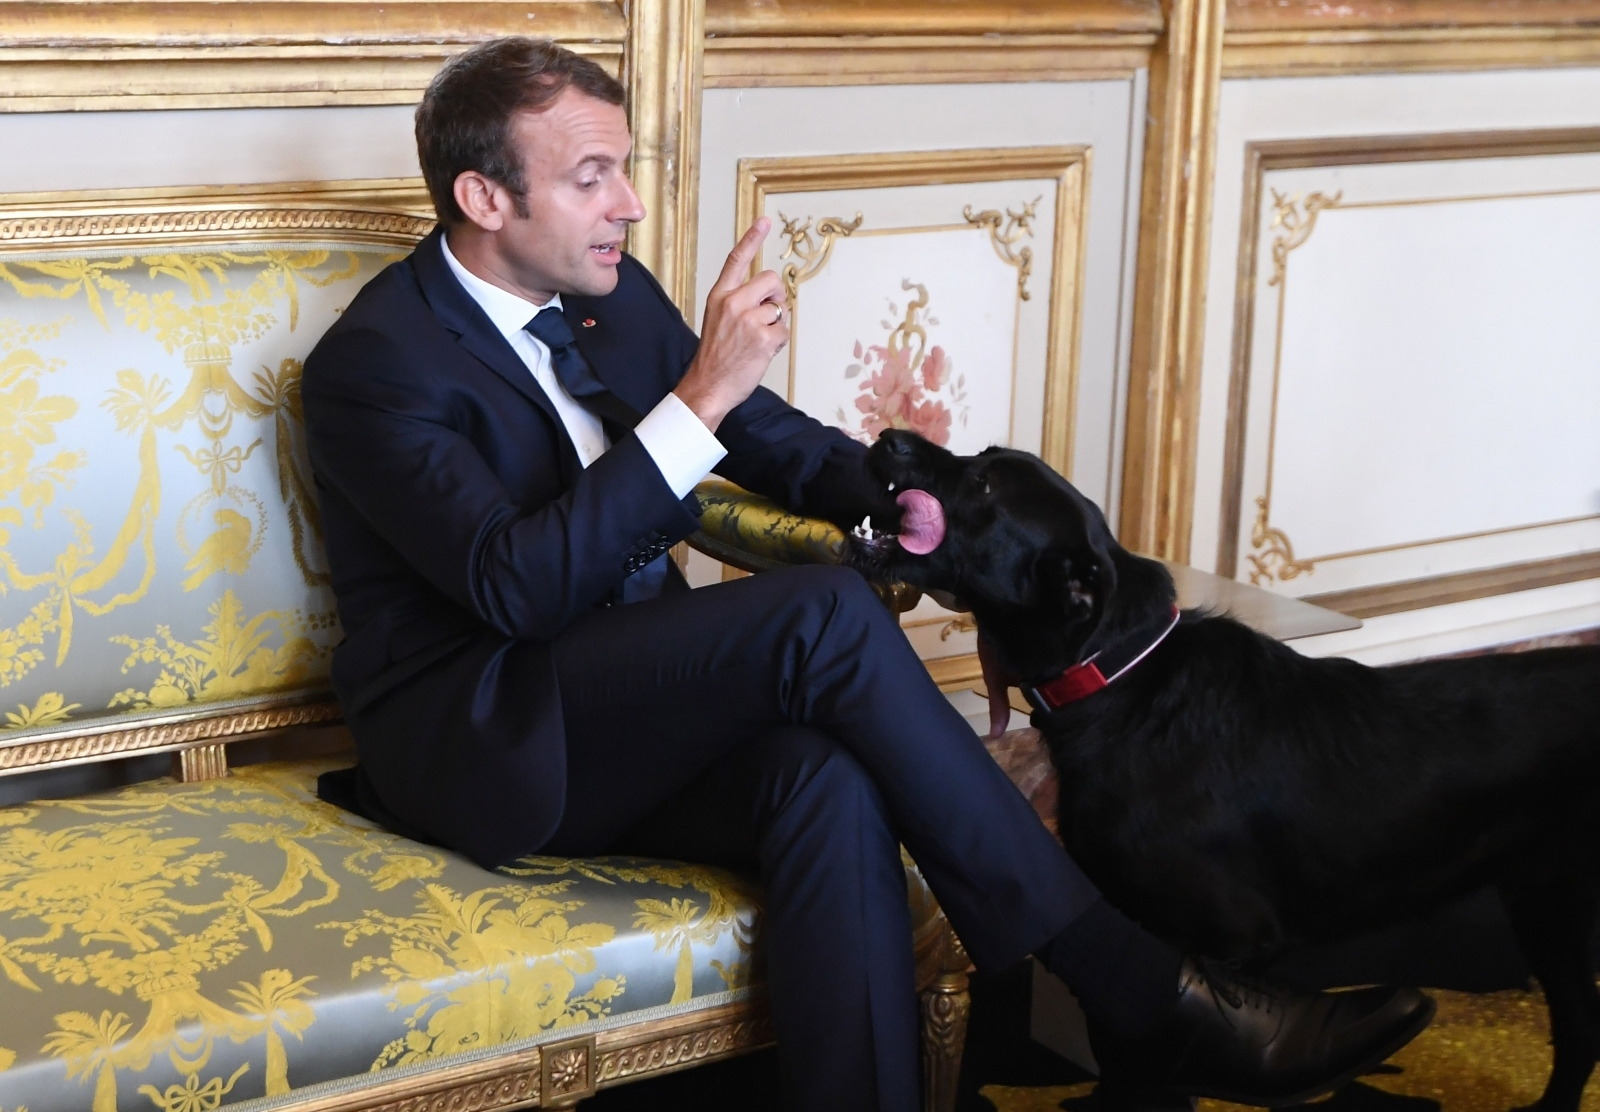 French President Emmanuel Macron's dog Nemo interrupts meeting to pee on fireplace